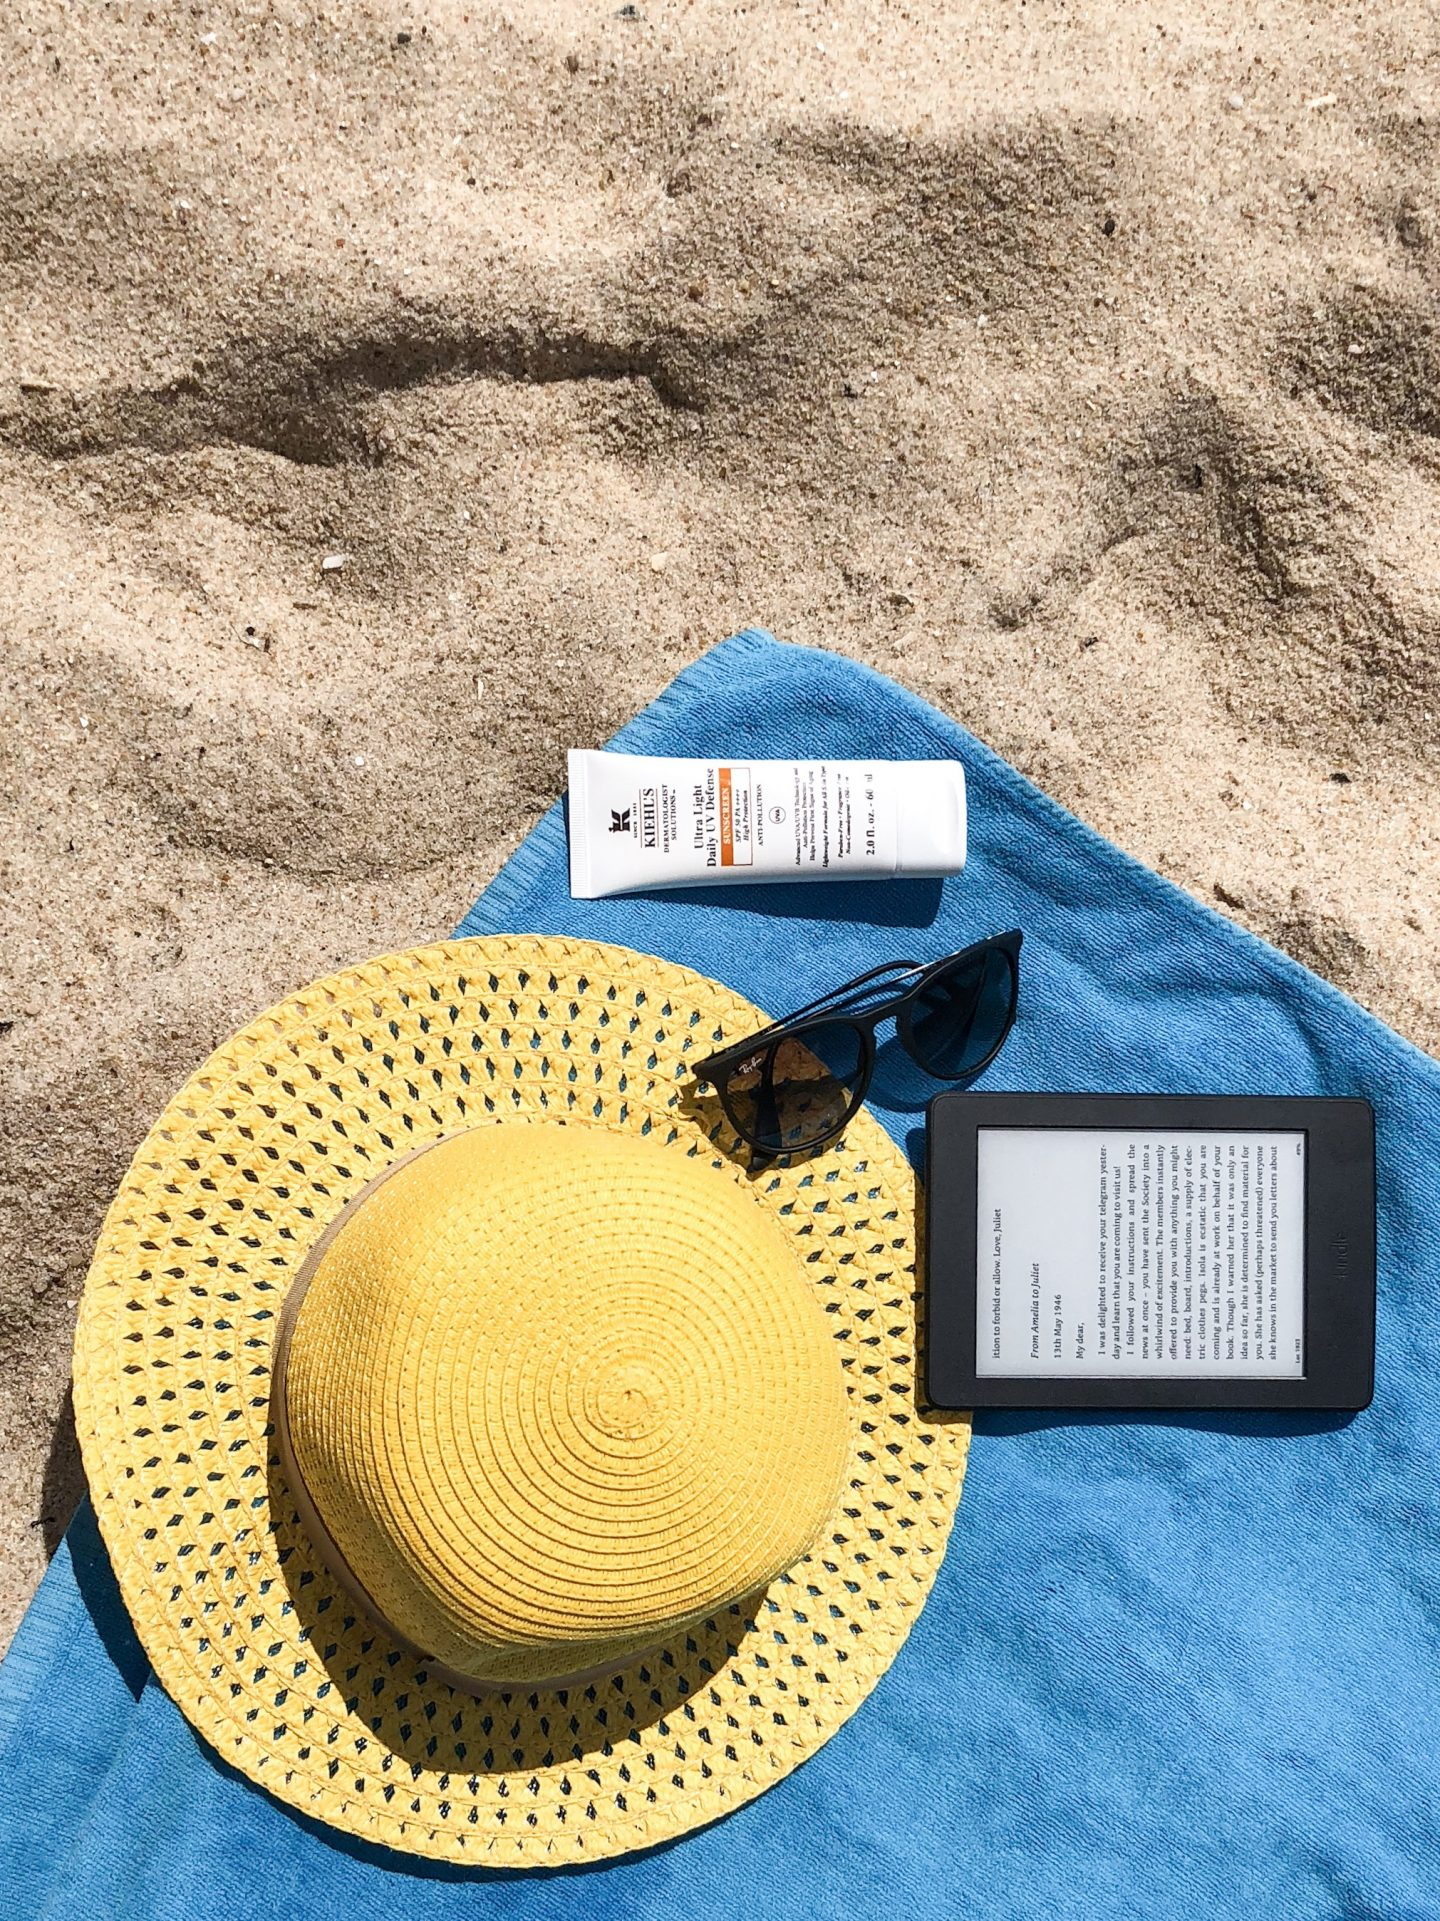 Top Summer reads